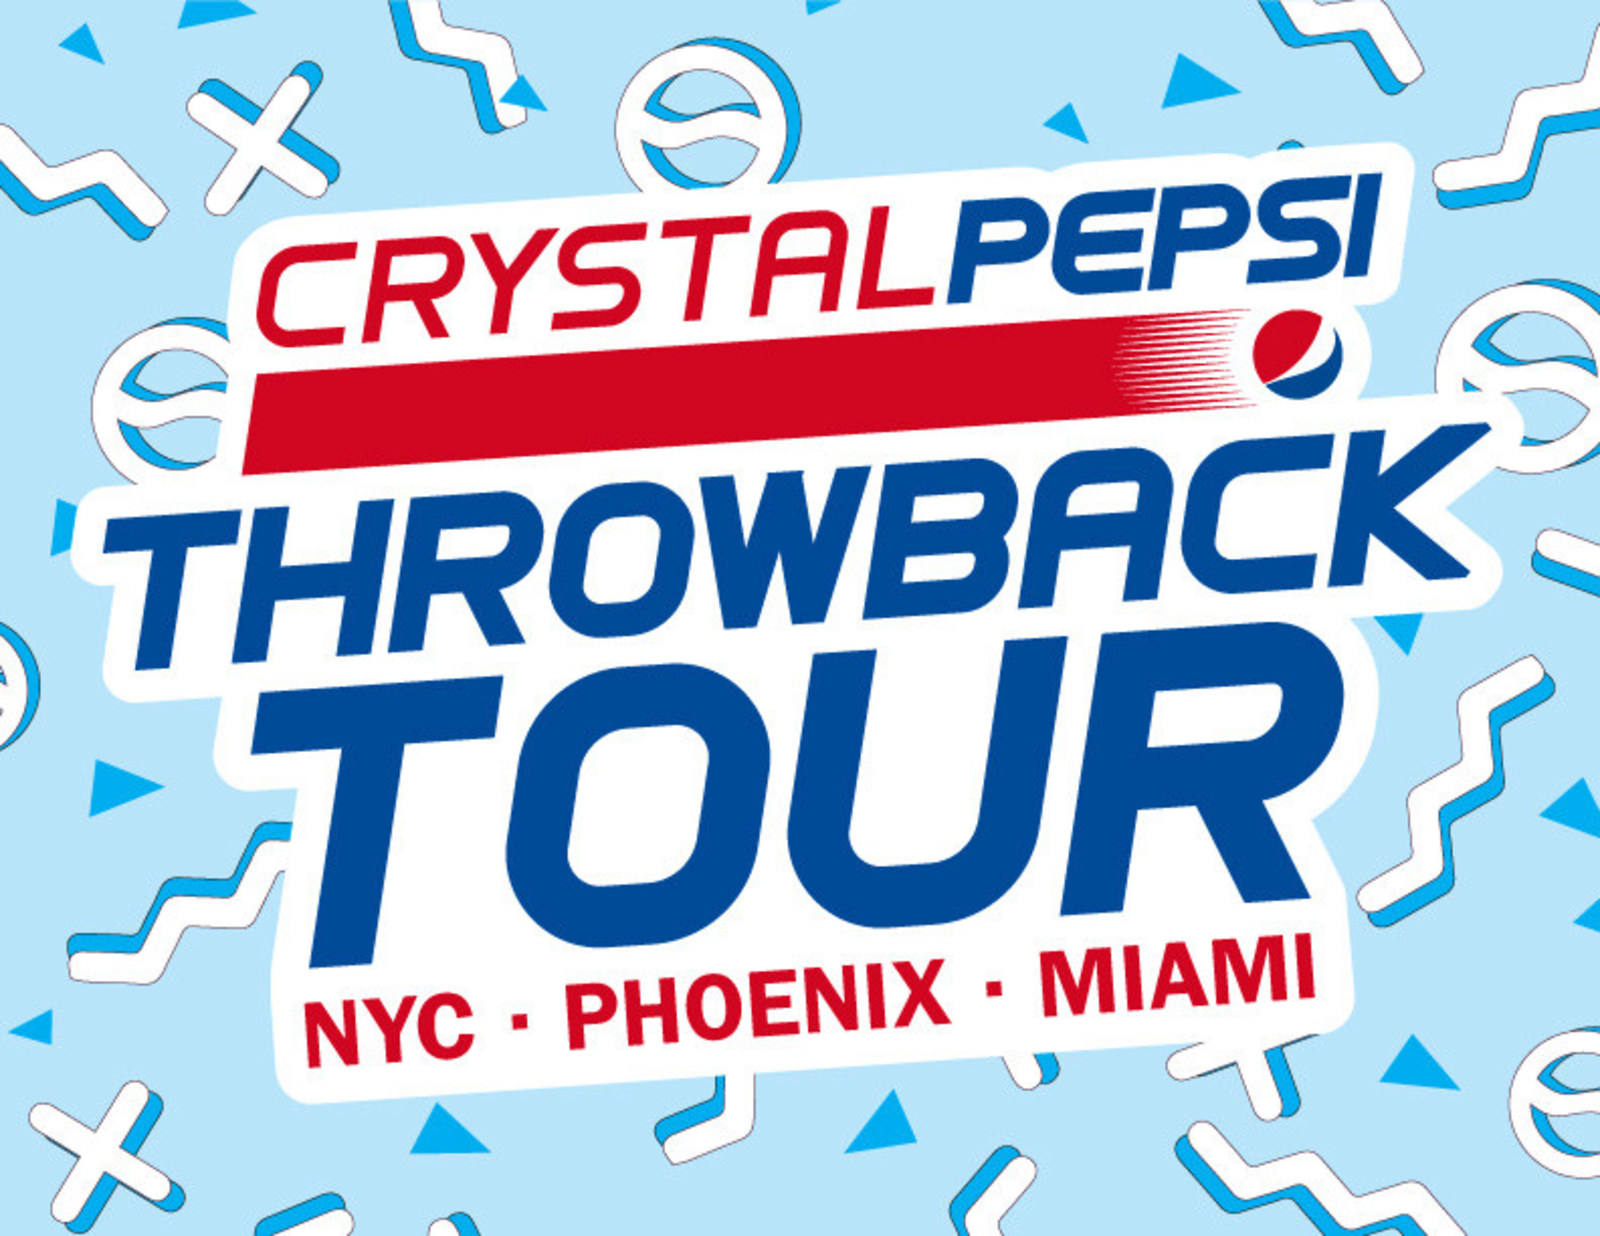 The Crystal Pepsi Throwback Tour Is A Multi City Tribute To Nostalgia Of 90s With Stops In New York Phoenix And Miami PepsiCo